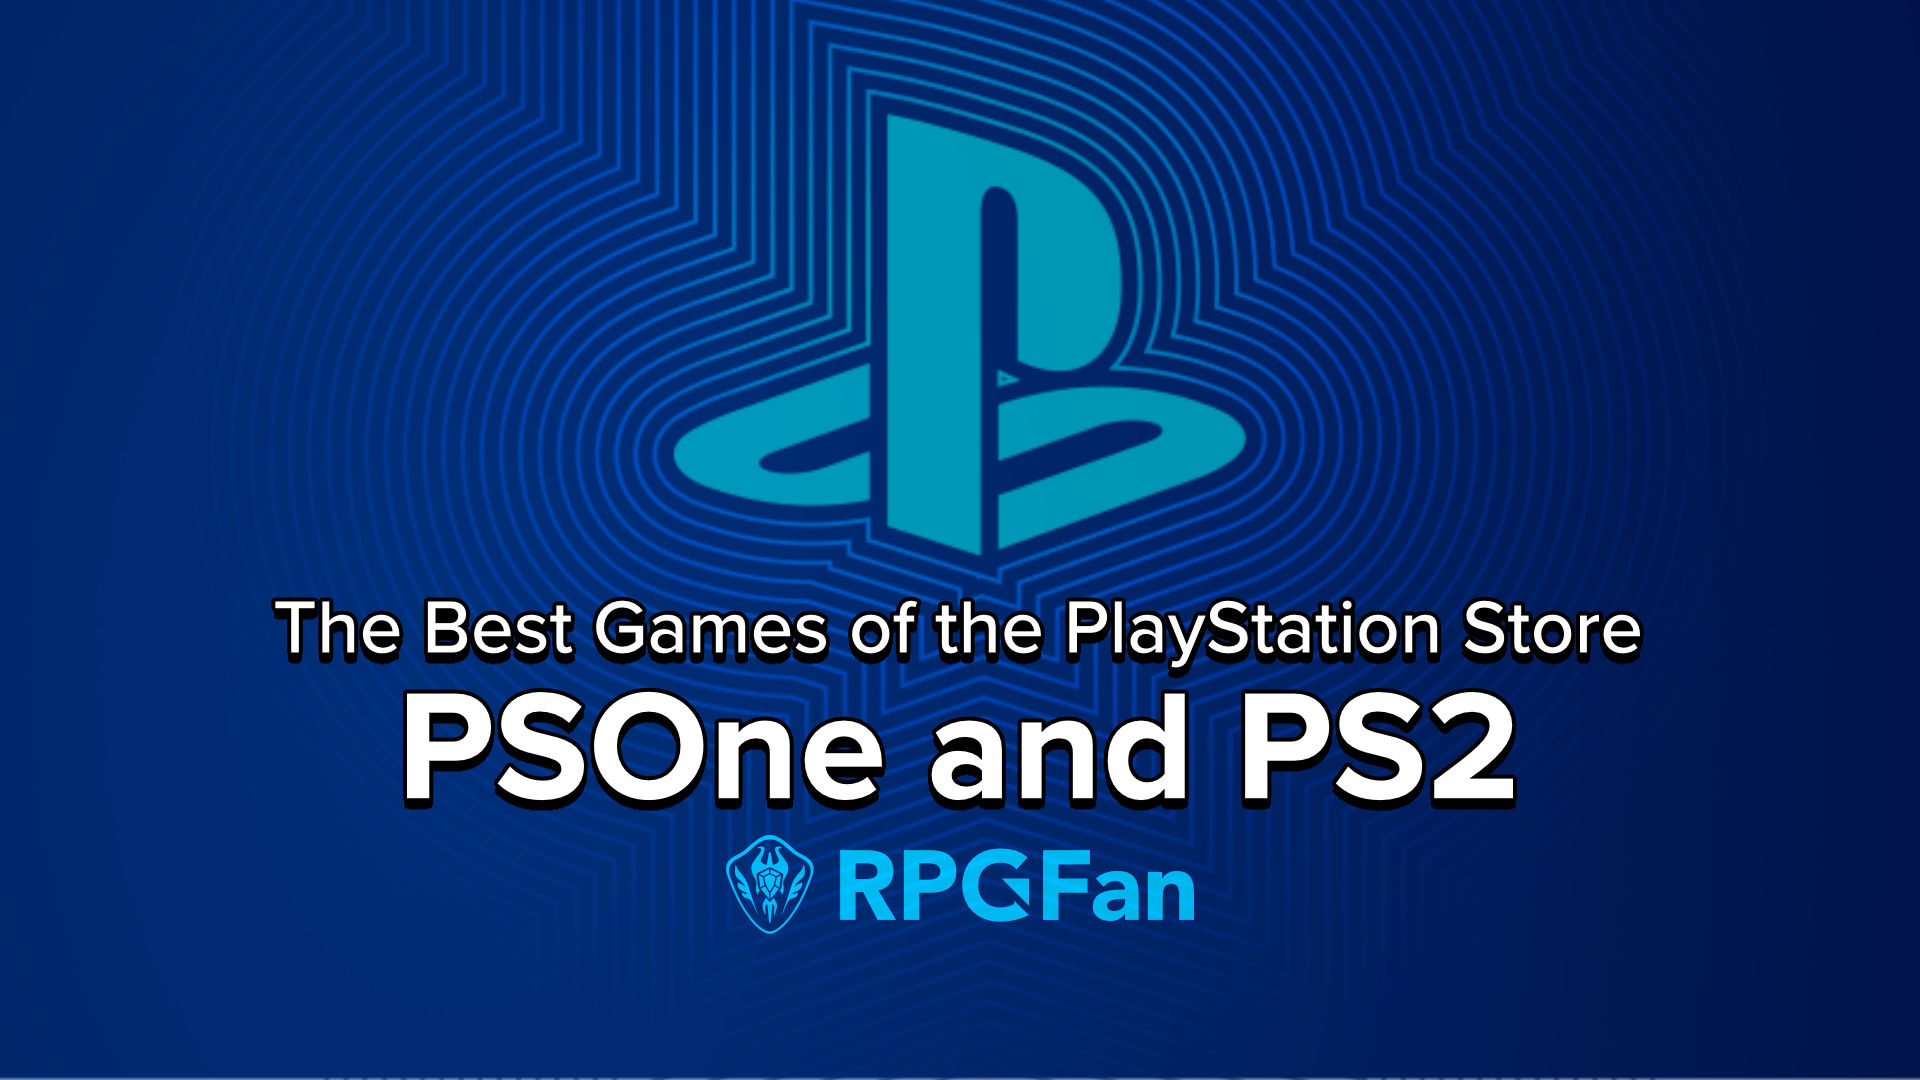 The Best Games of the PlayStation Store PSOne and PS2